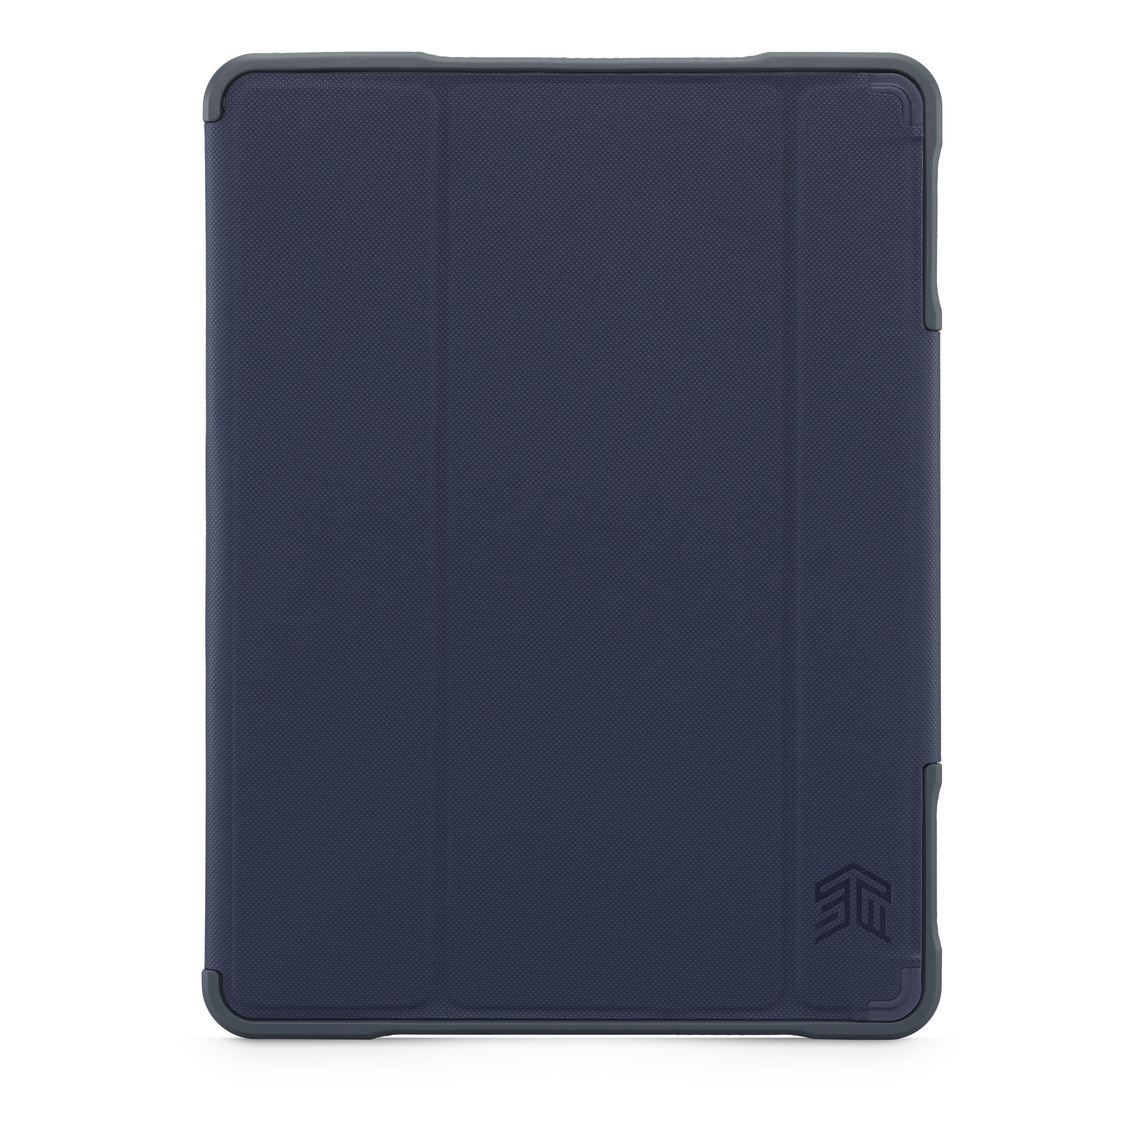 new concept 08ea7 578bb STM Dux Plus Case for 10.5-inch iPad Air and iPad Pro - Midnight Blue